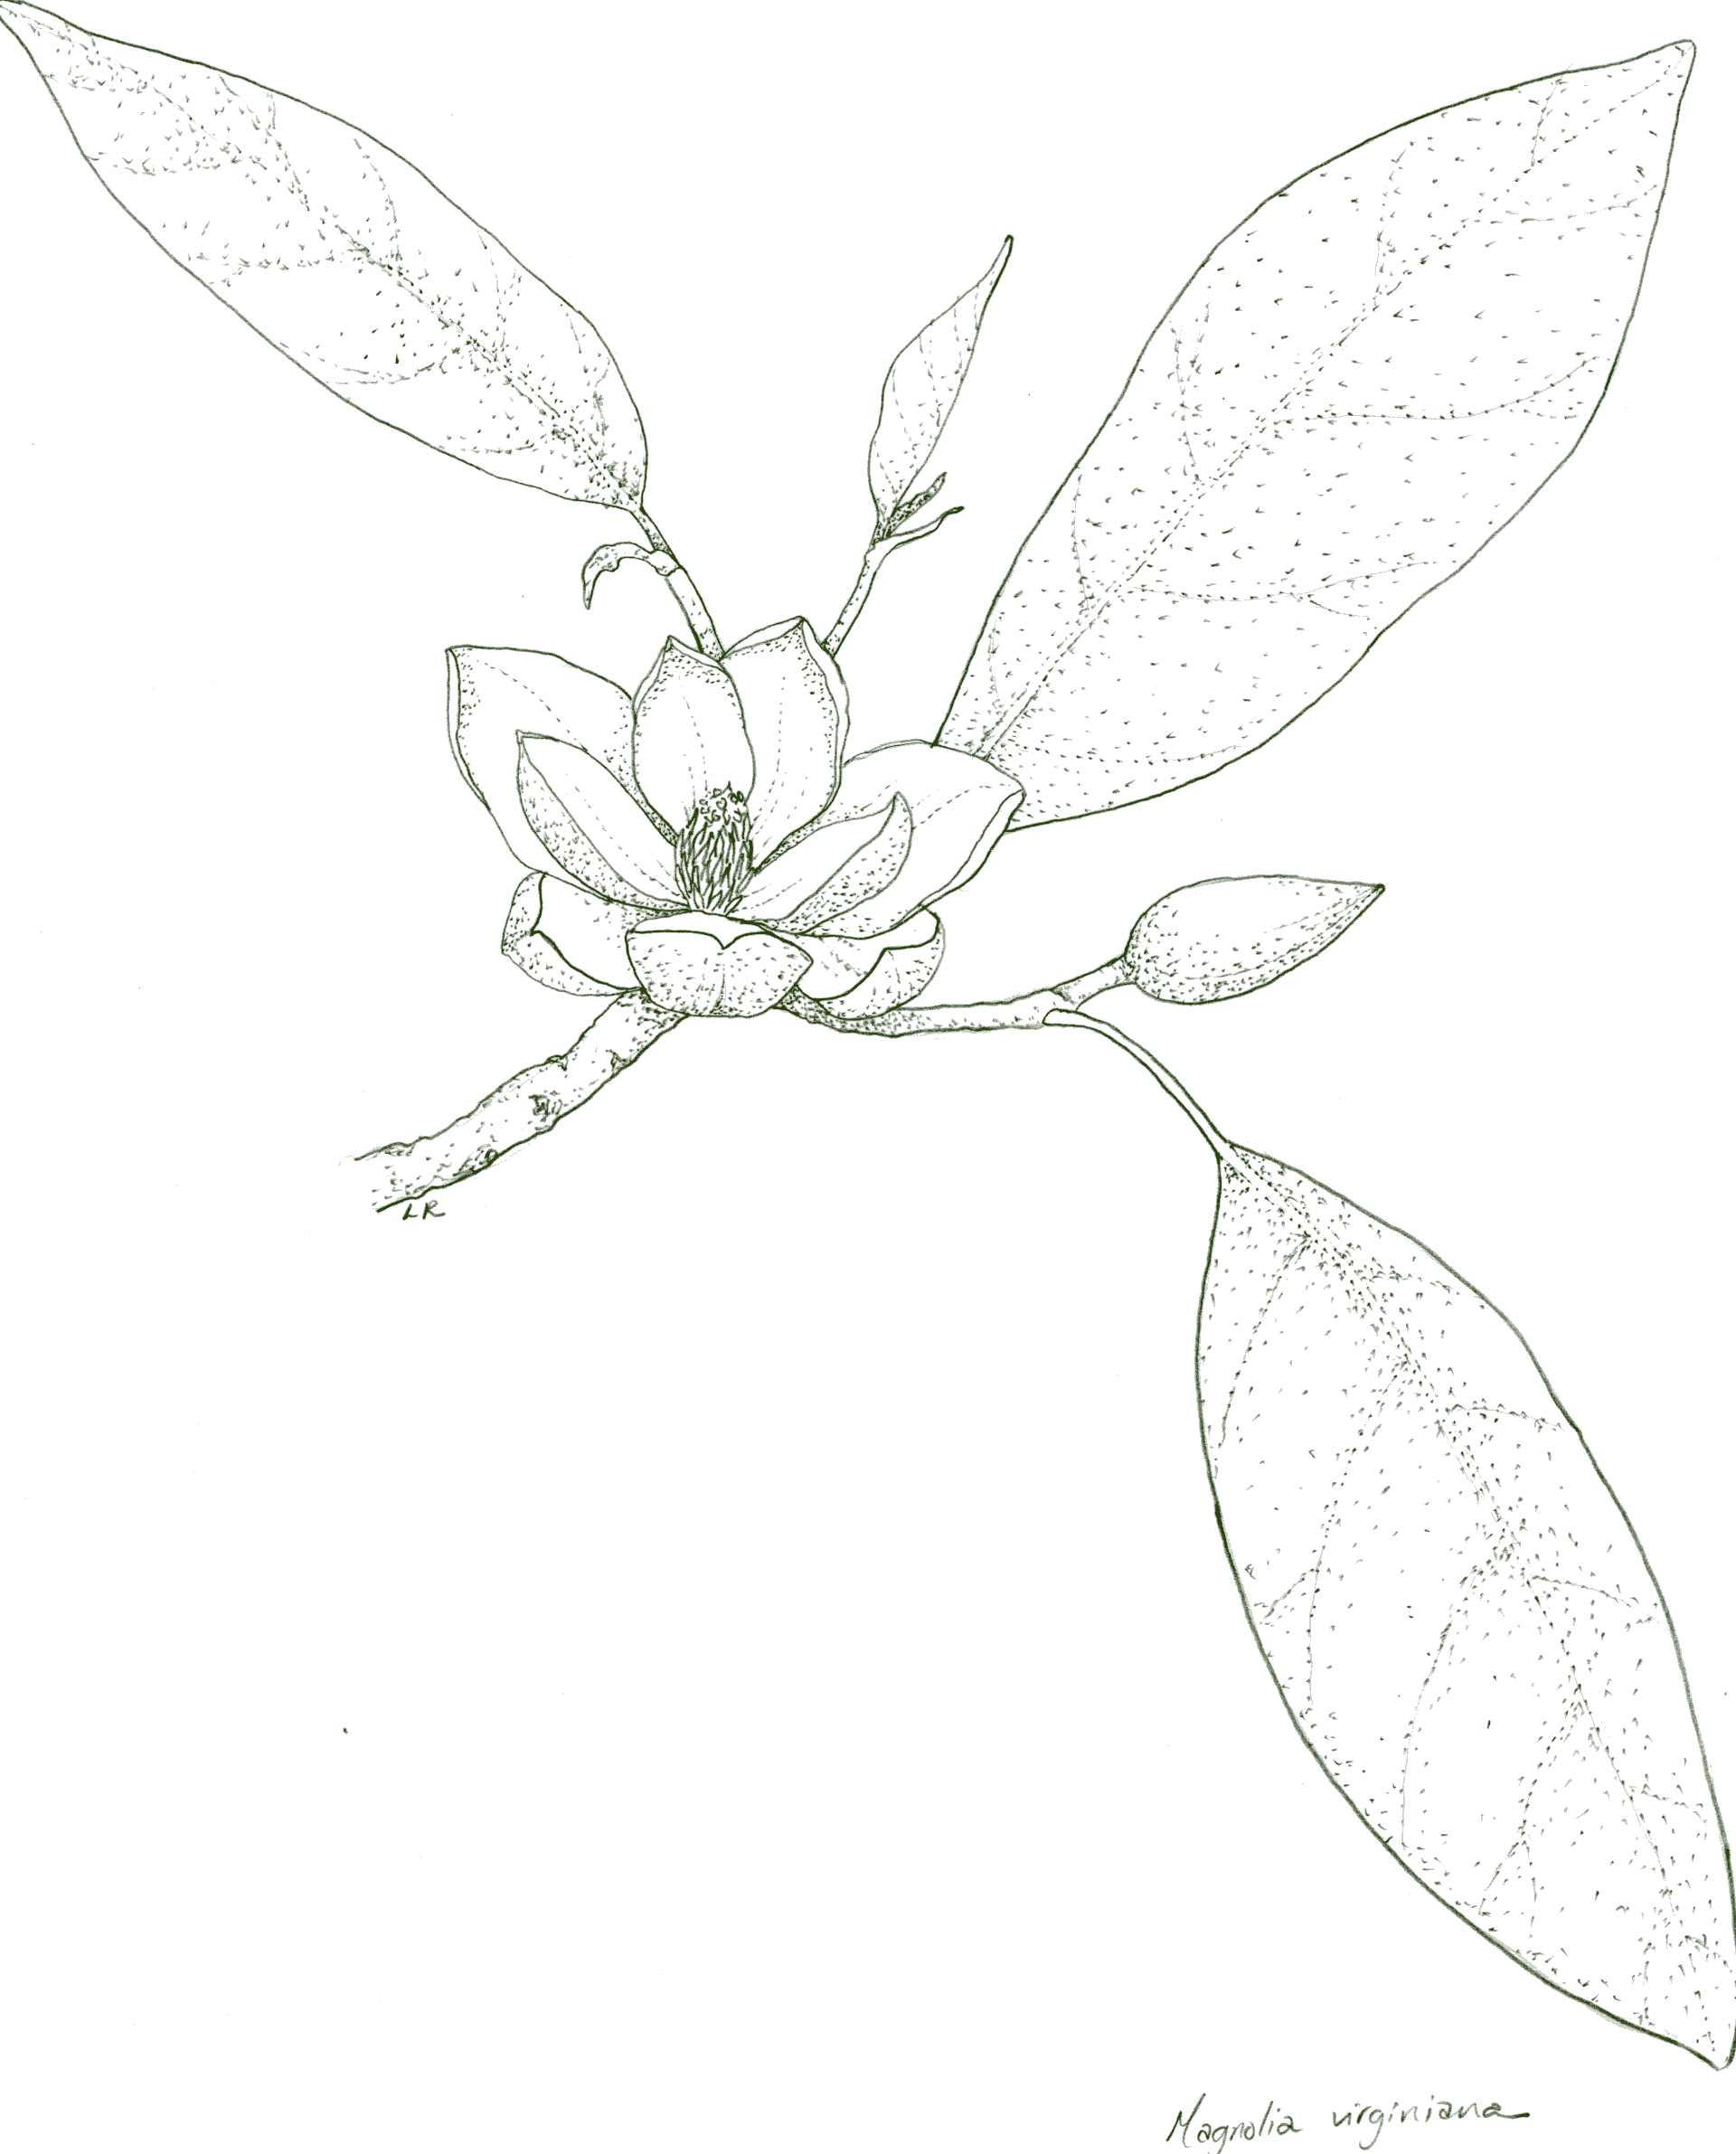 hight resolution of 1920x2382 magnolia drawing magnolia leaf for free download magnolia leaf drawing